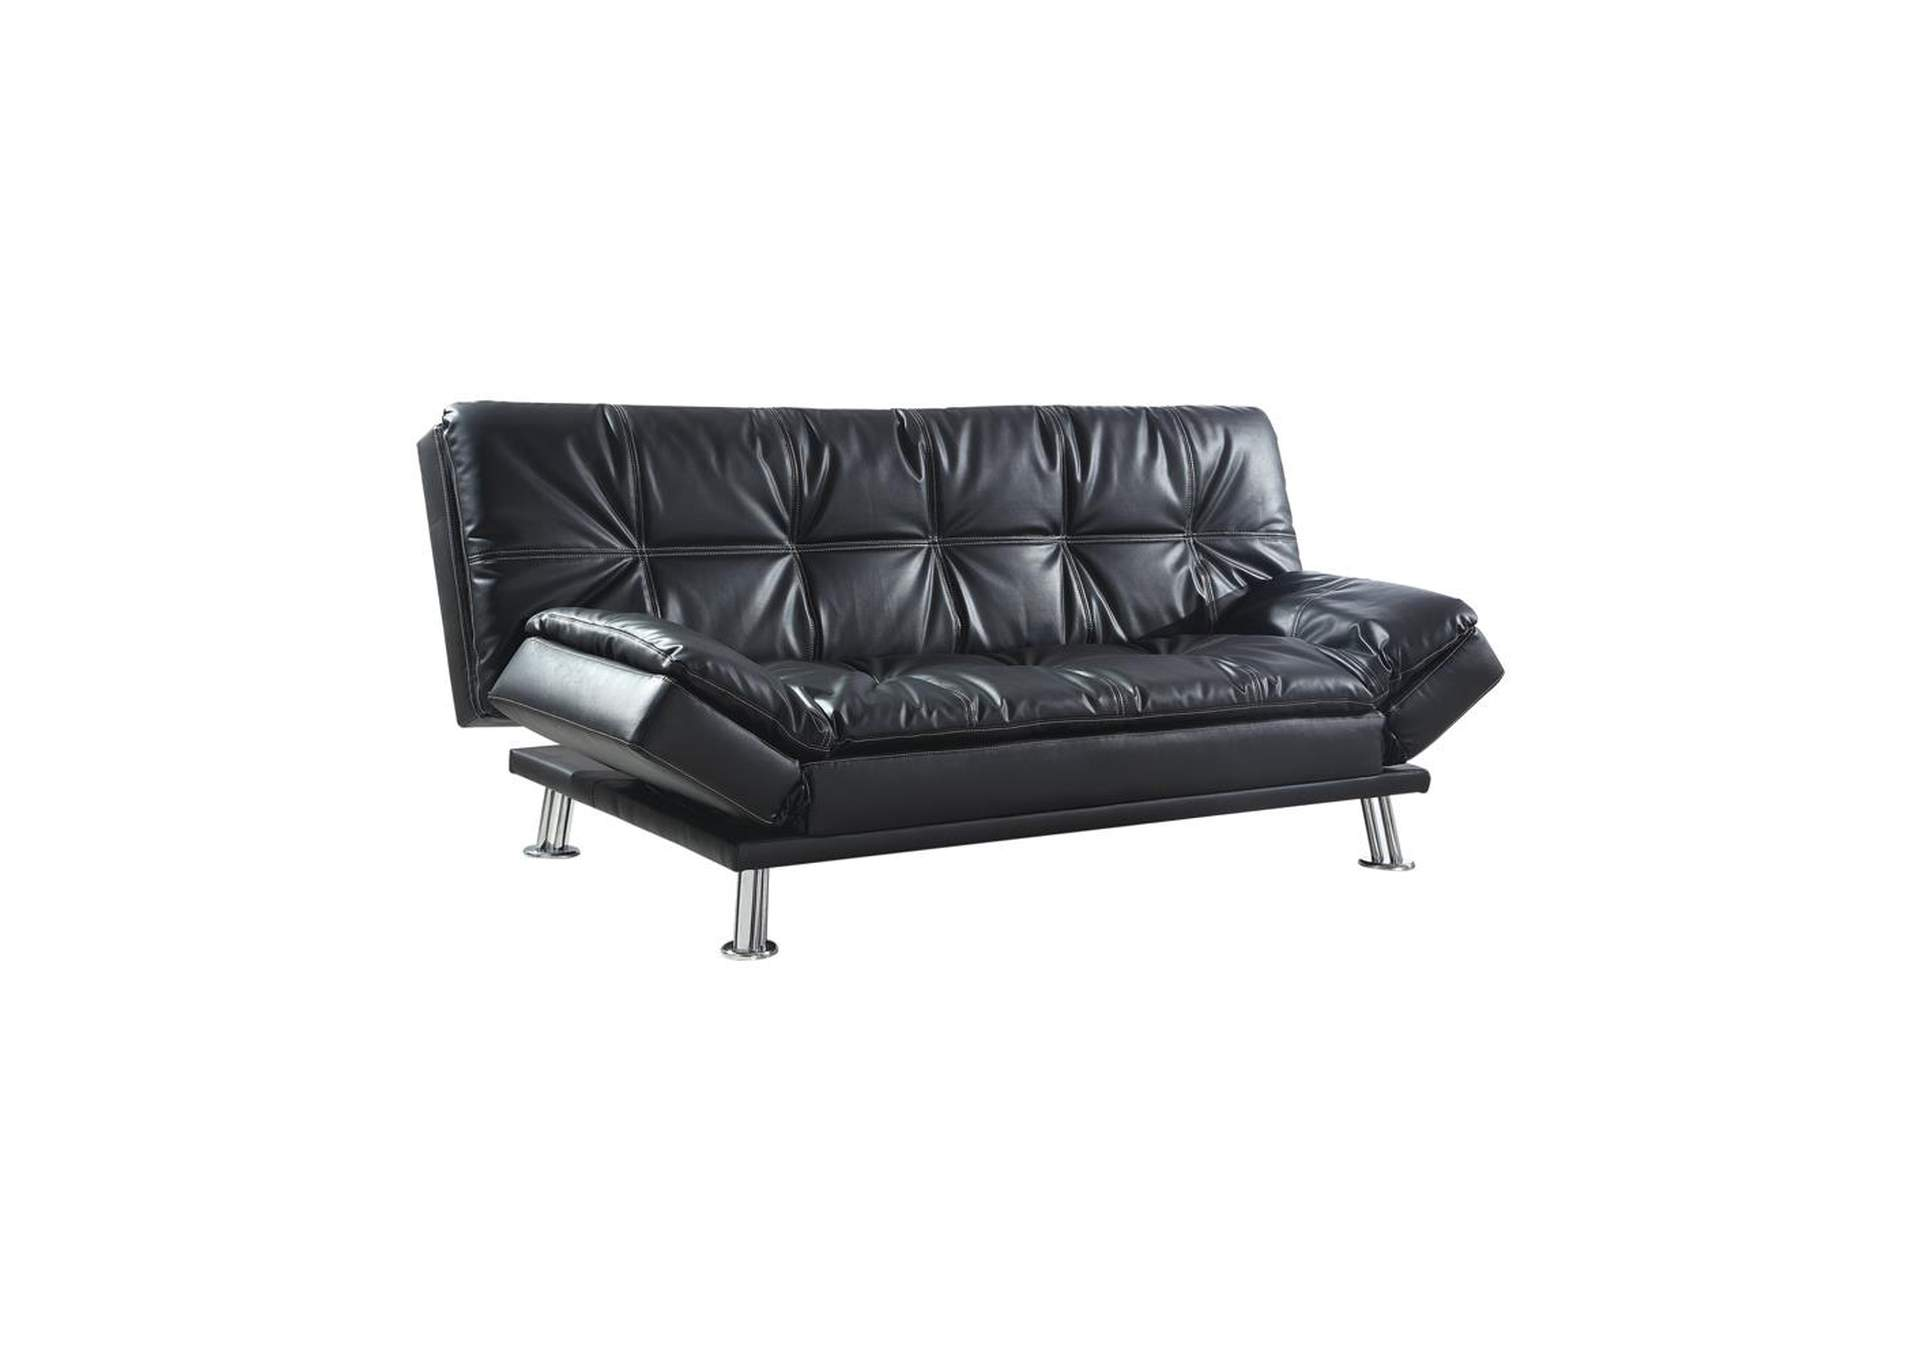 Tuna Dilleston Contemporary Black Sofa Bed,Coaster Furniture